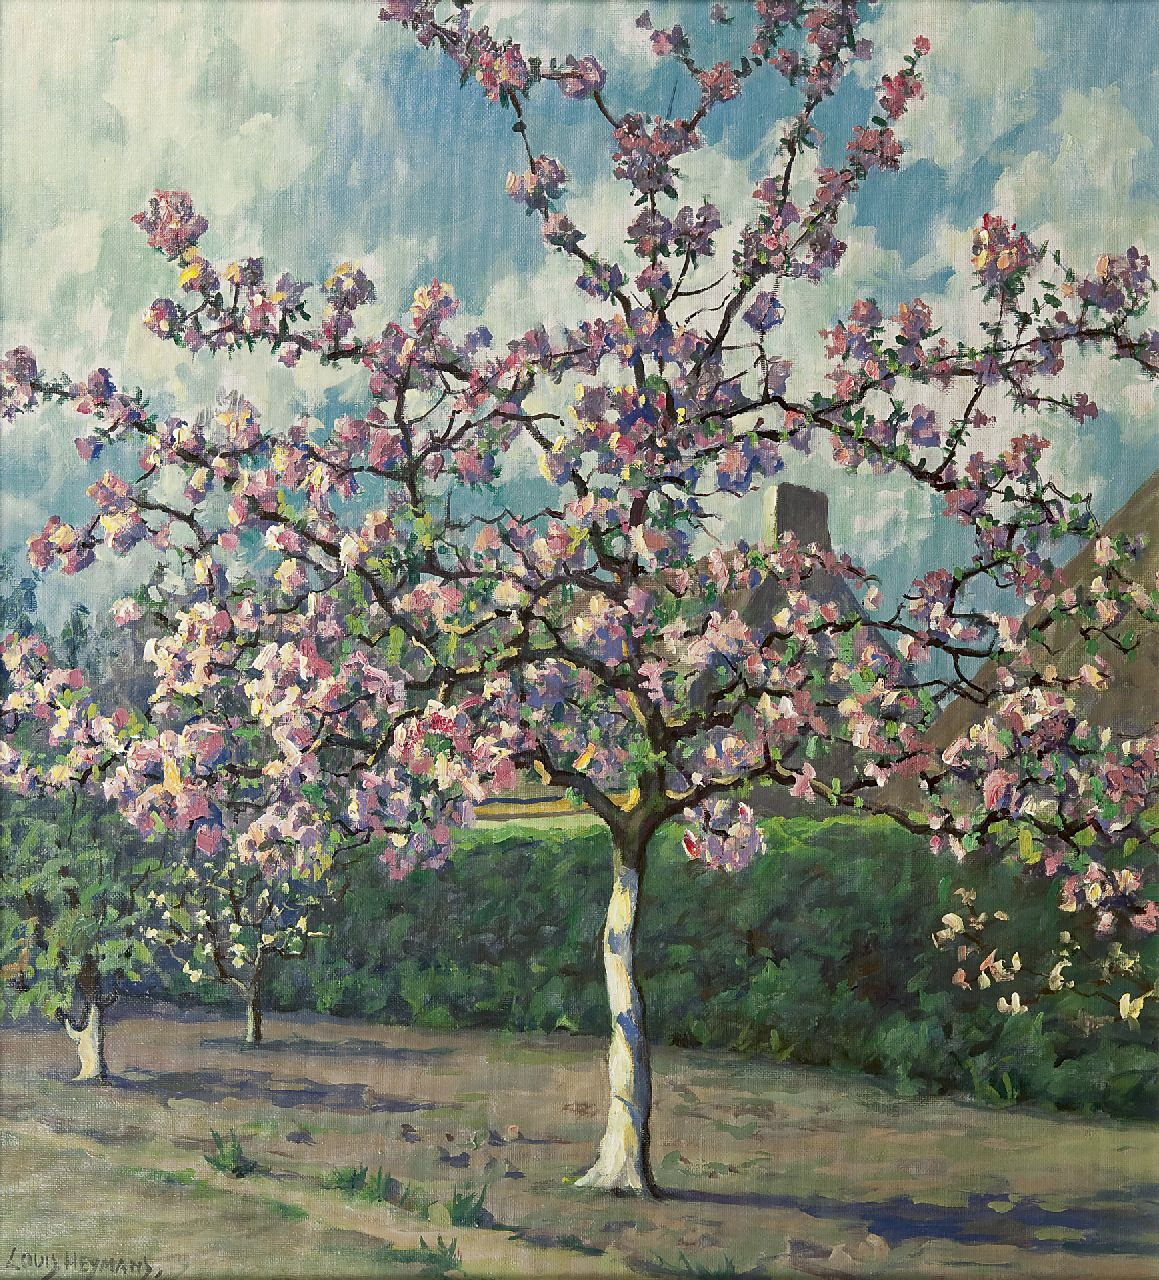 Heijmans L.  | Laurentius 'Louis' Heijmans, Flowering tree, oil on canvas 55.7 x 50.7 cm, signed l.l.